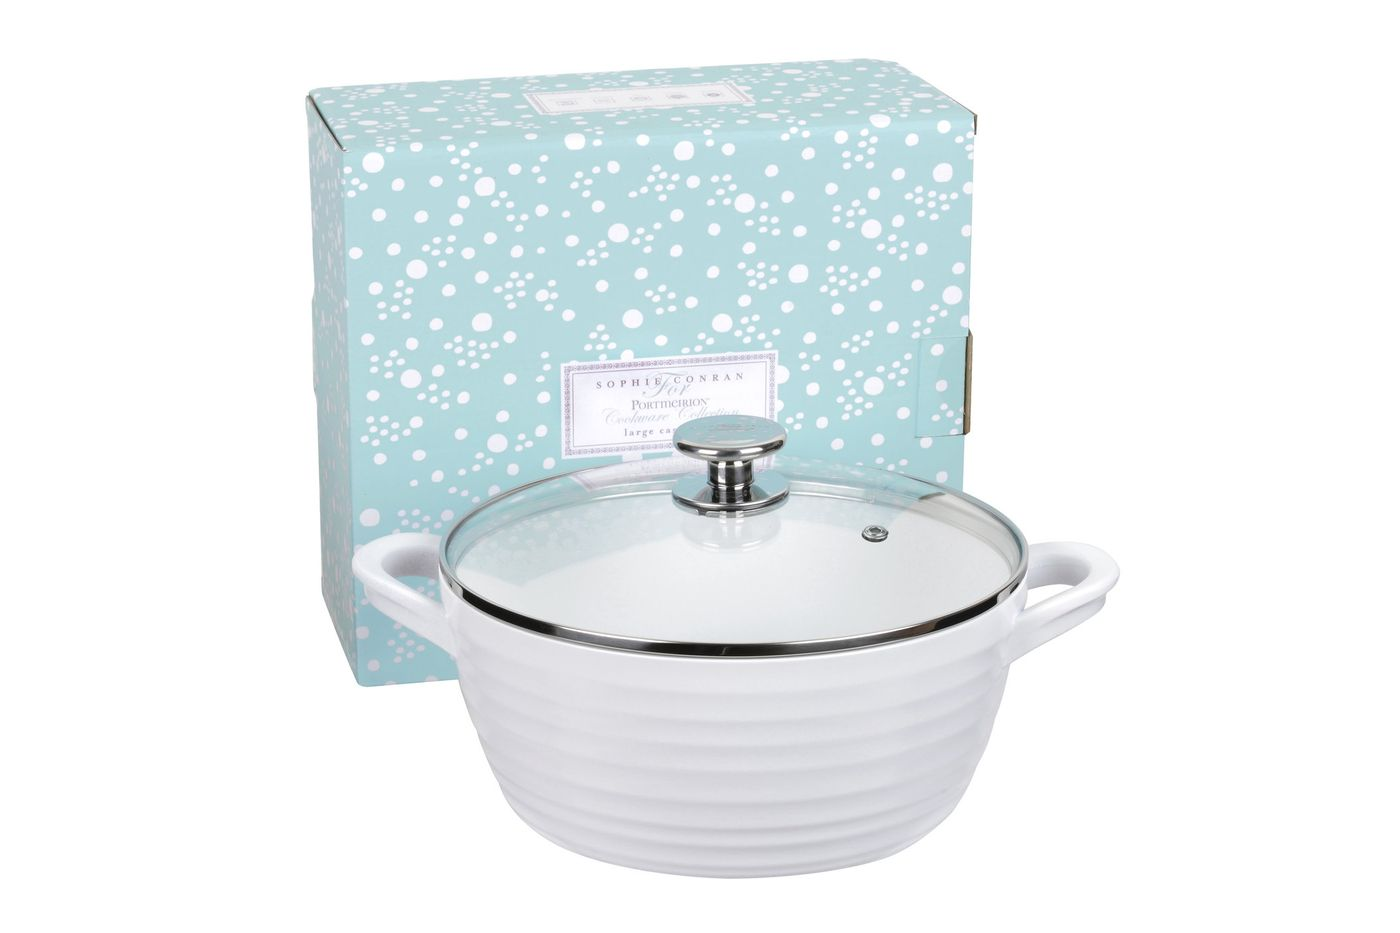 Sophie Conran for Portmeirion Cookware Casserole Dish + Lid Large - White. Metal body with ceramic coating. thumb 2